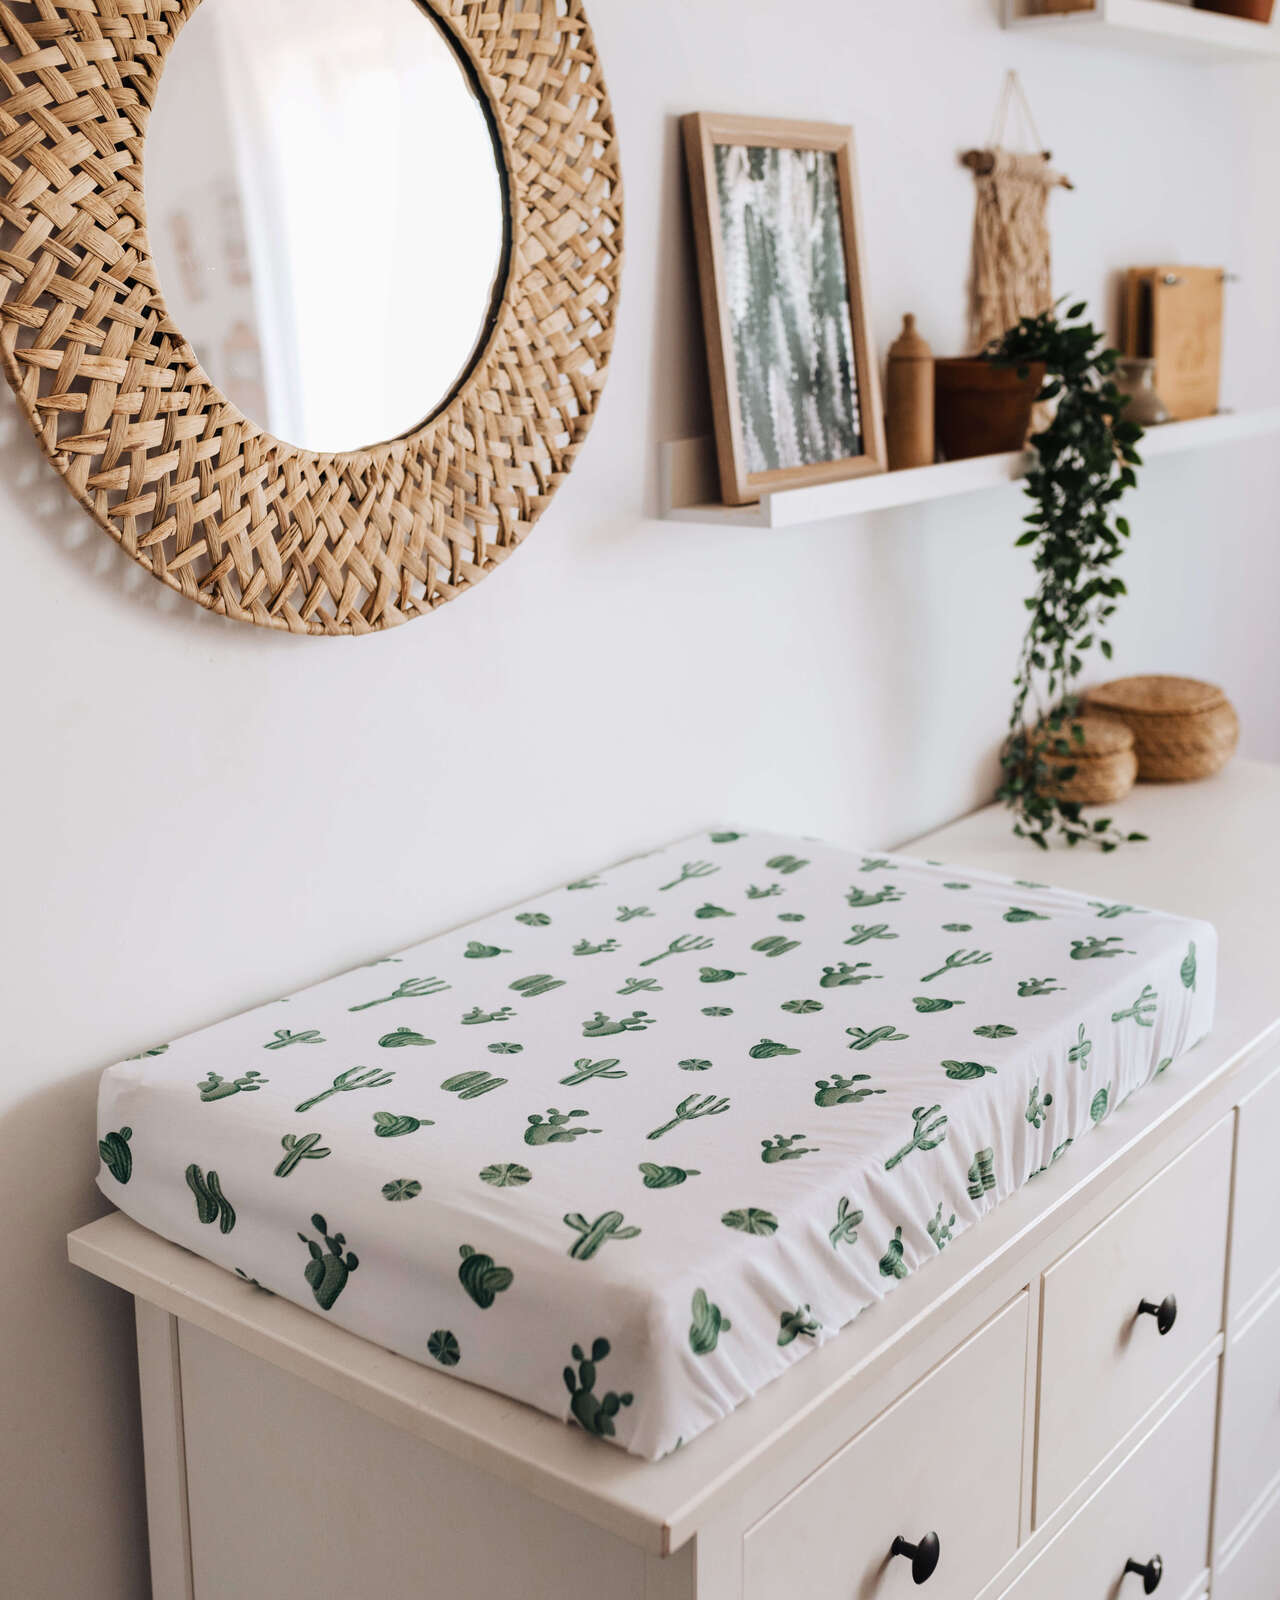 Snuggle Hunny Kids Fitted Bassinet & Change Pad Cover - Cactus